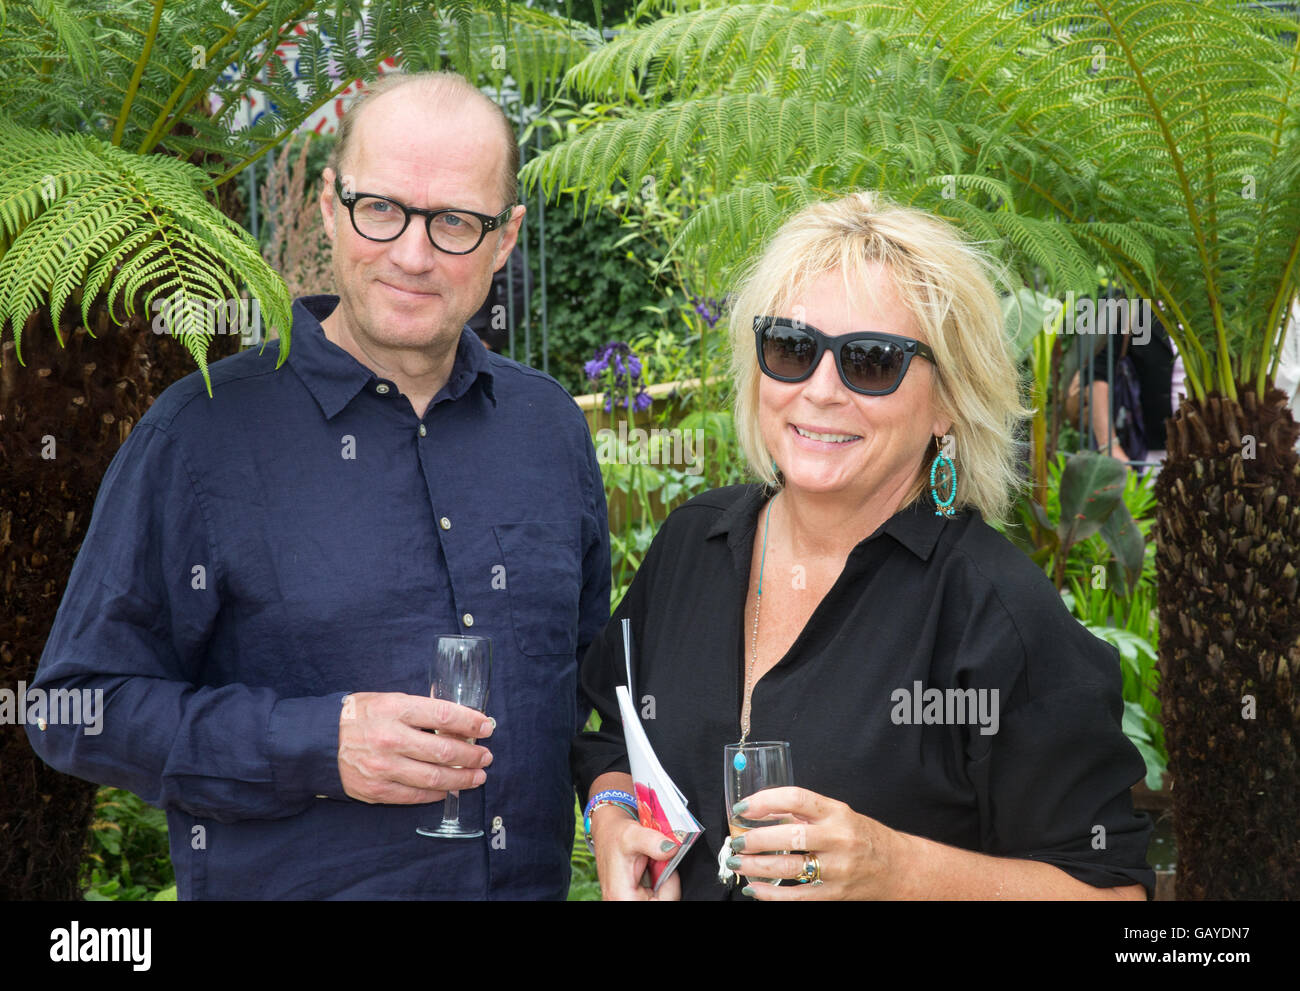 Absolutely Fabulous creator Jennifer Saunders, attends RHS Hampton Court Palace Flower Show with her husband Ade - Stock Image